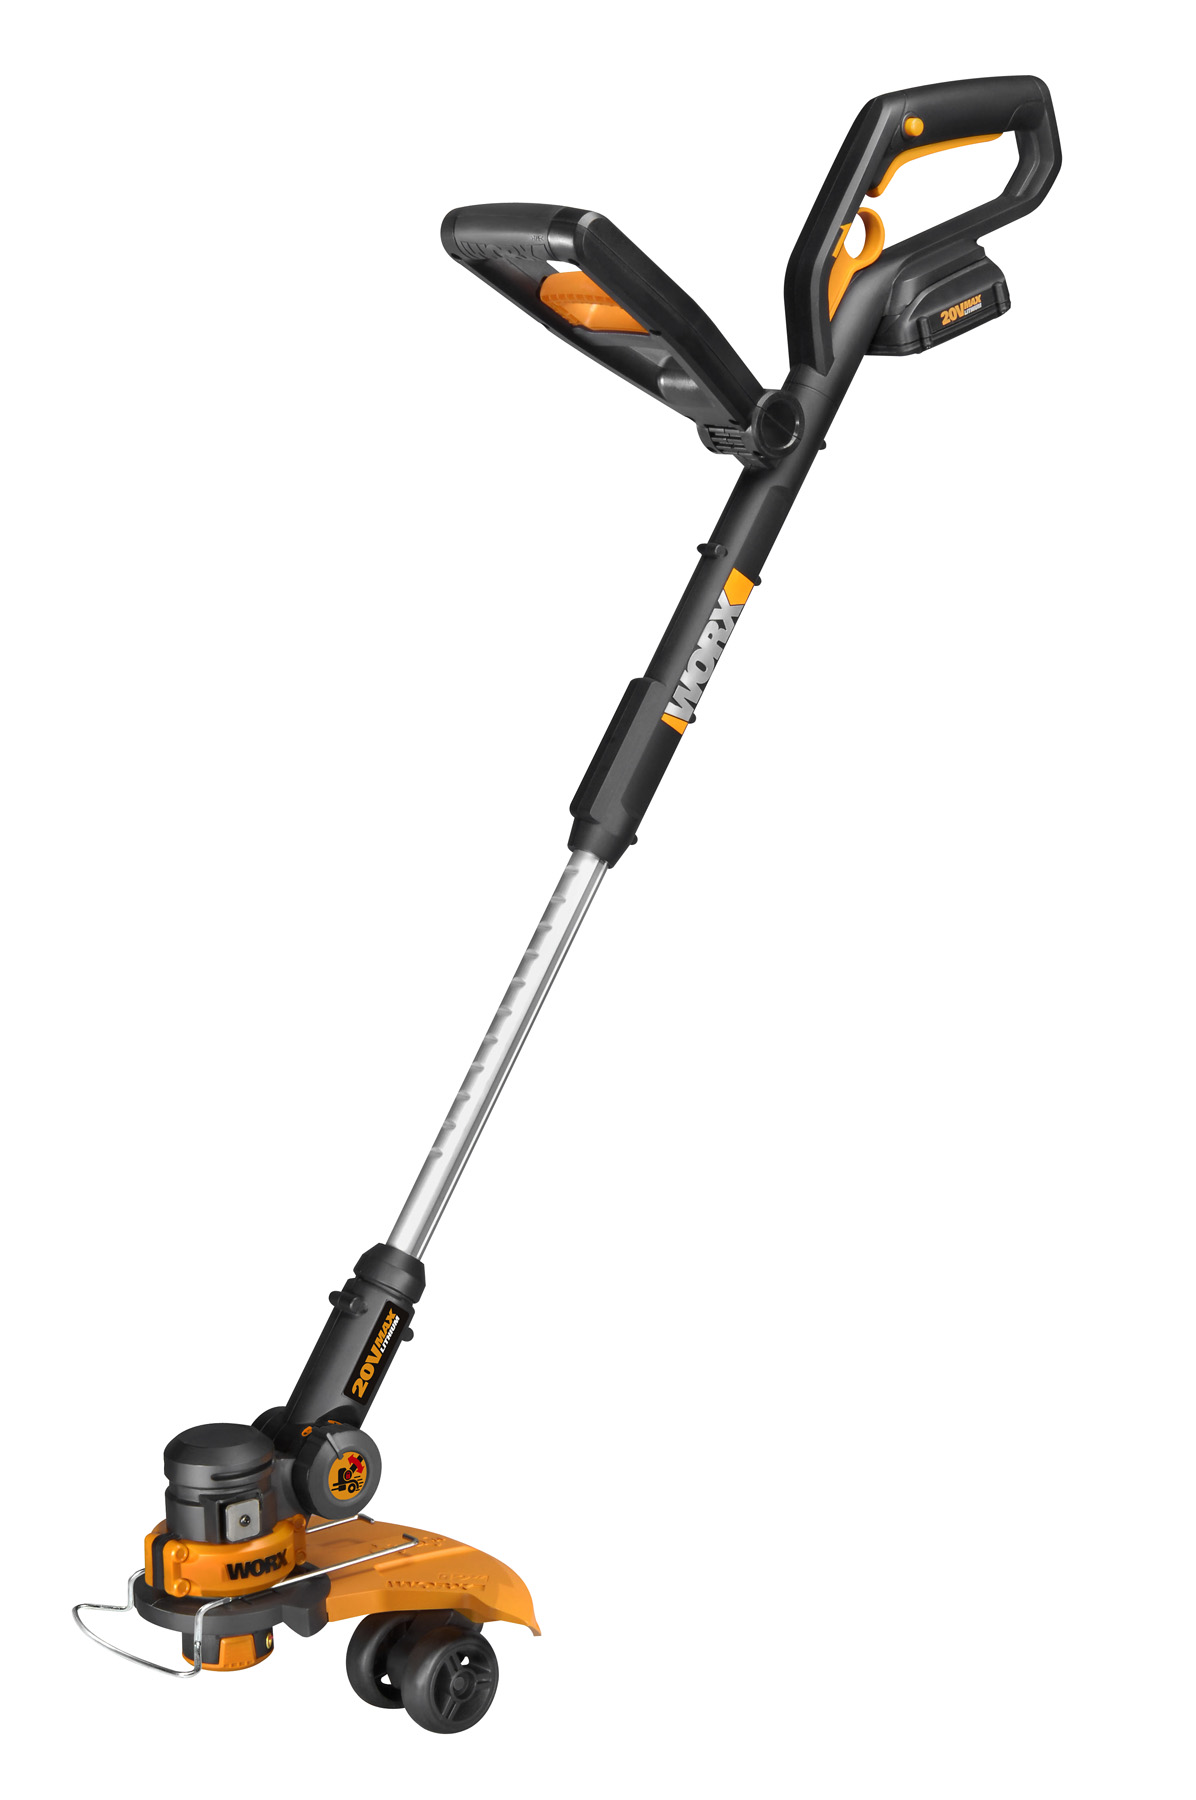 Worx 20 Volt 2 0 Gt Trimmer Edger Mini Mower